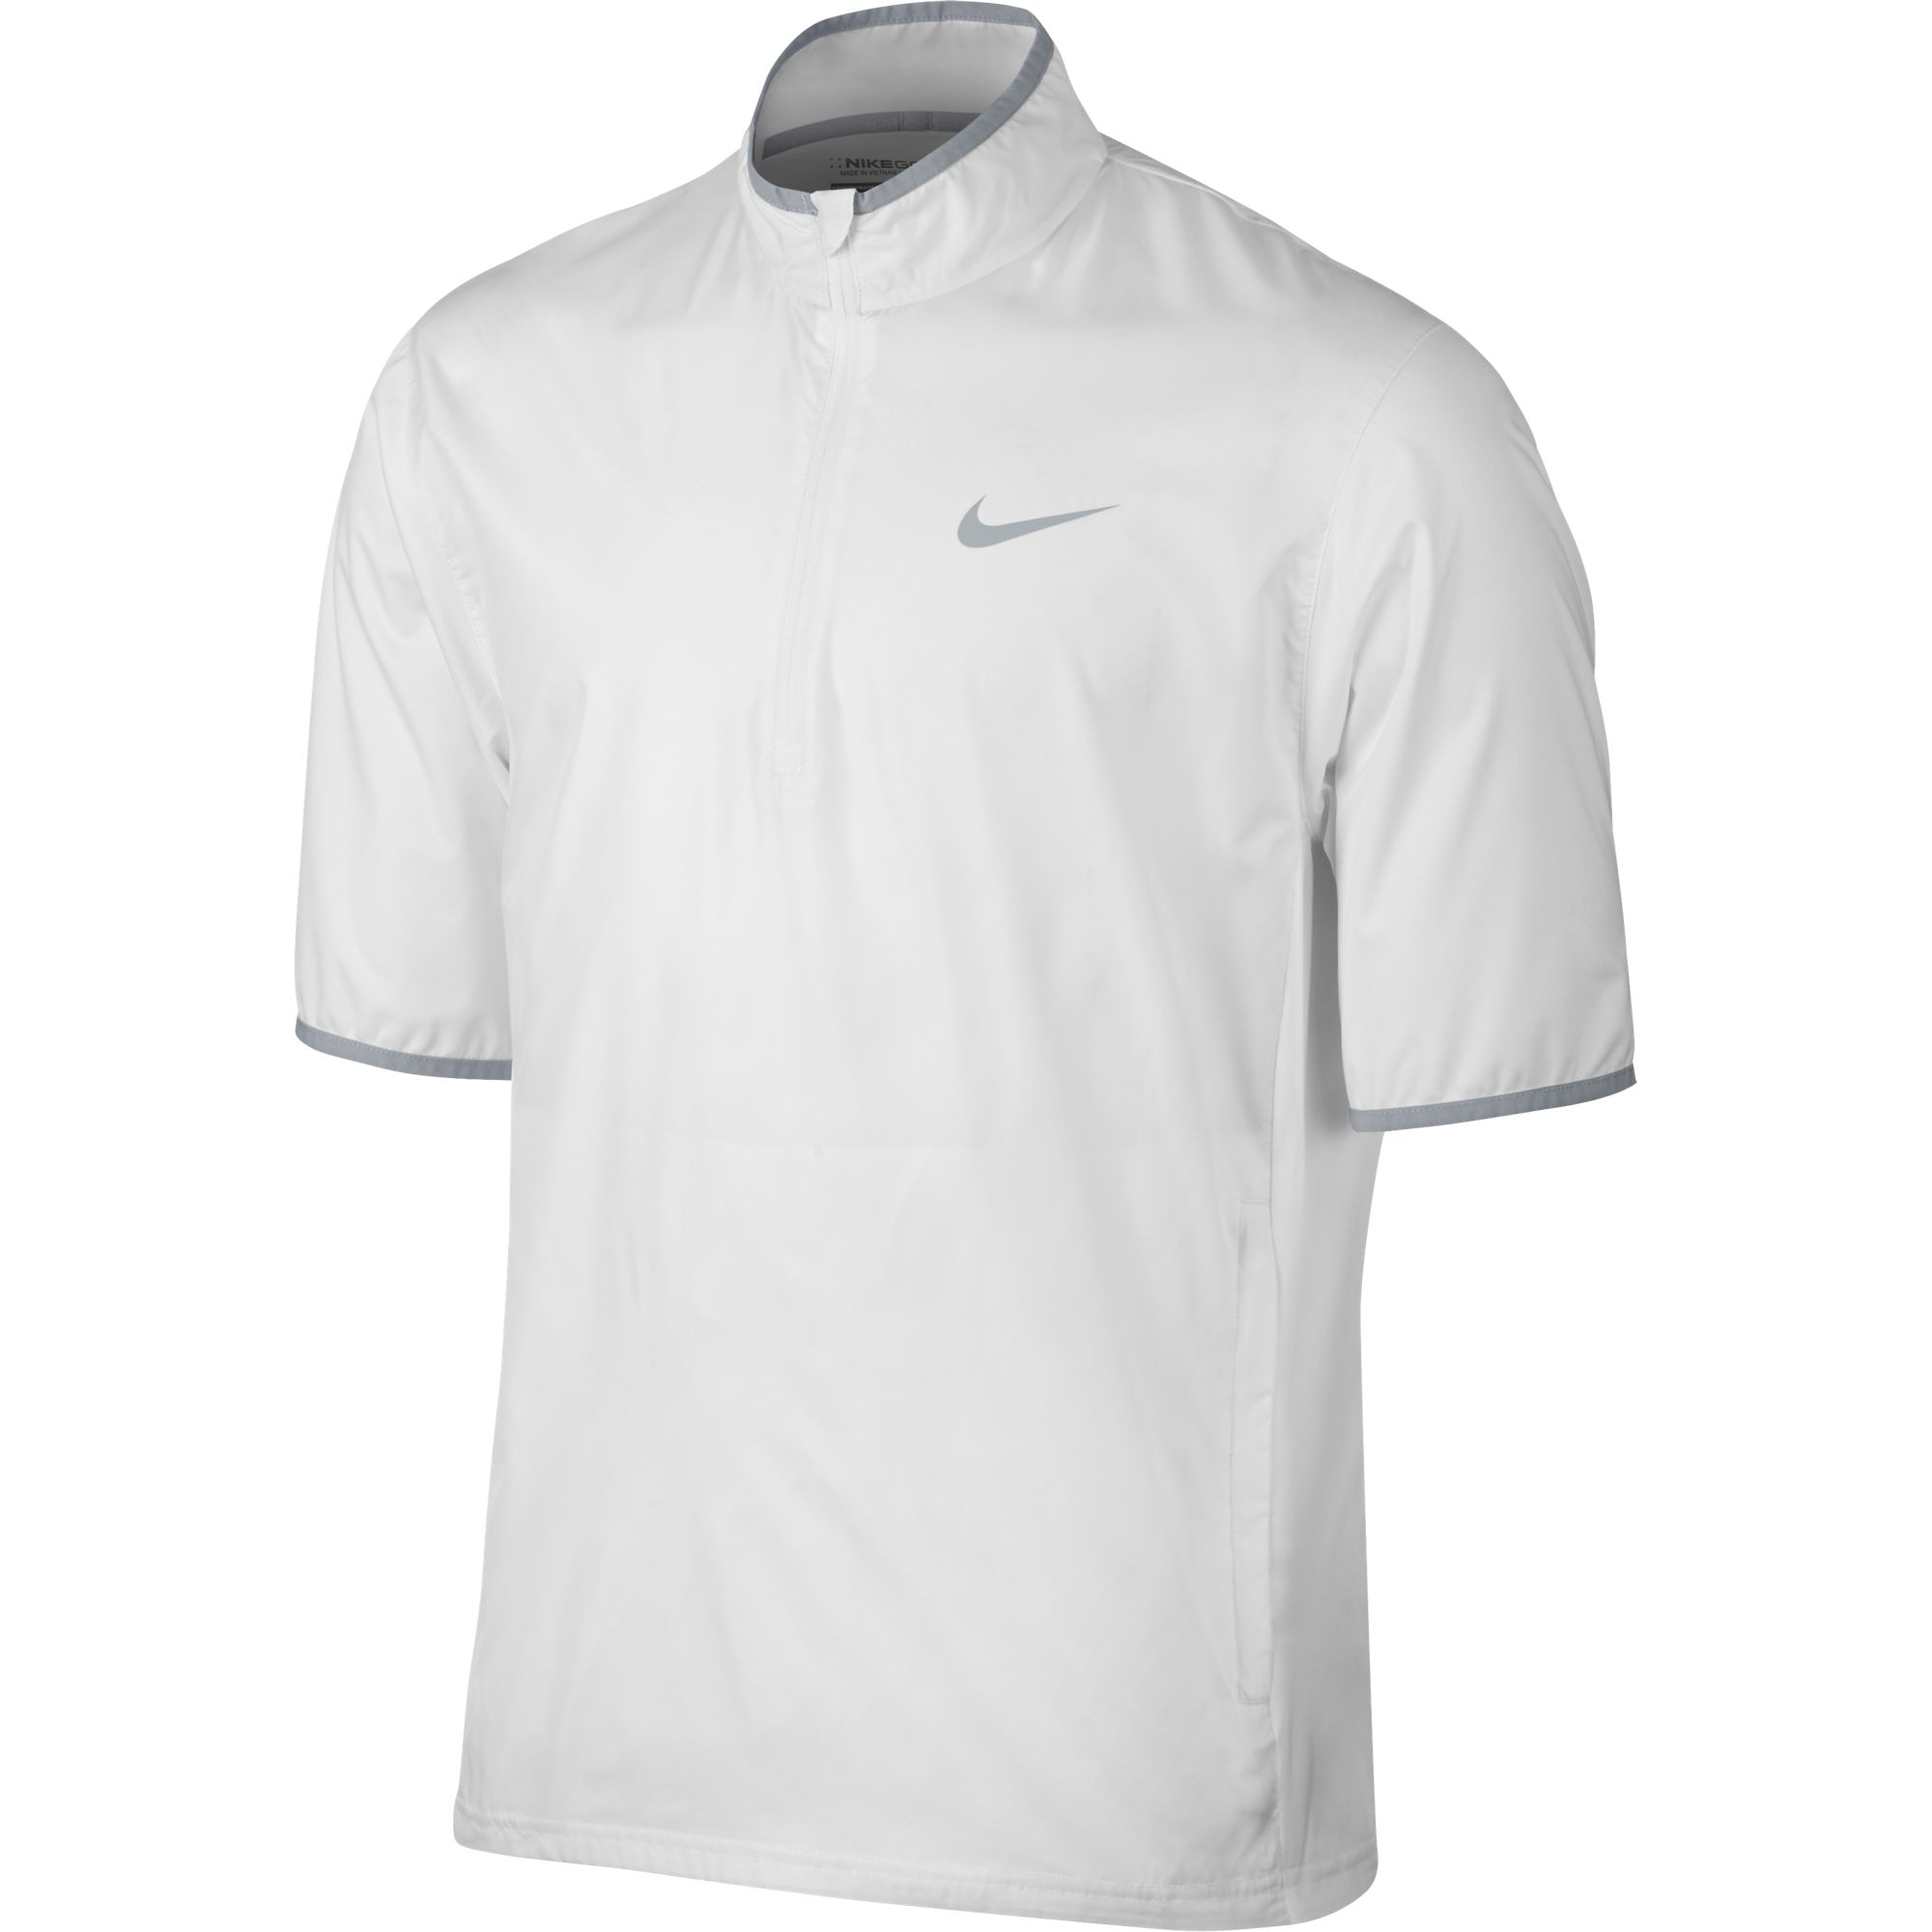 ed9ff42cbb9e Details about Nike Golf CLOSEOUT Men s Shield Short Sleeve Jacket (White)  833302-100 Was  80